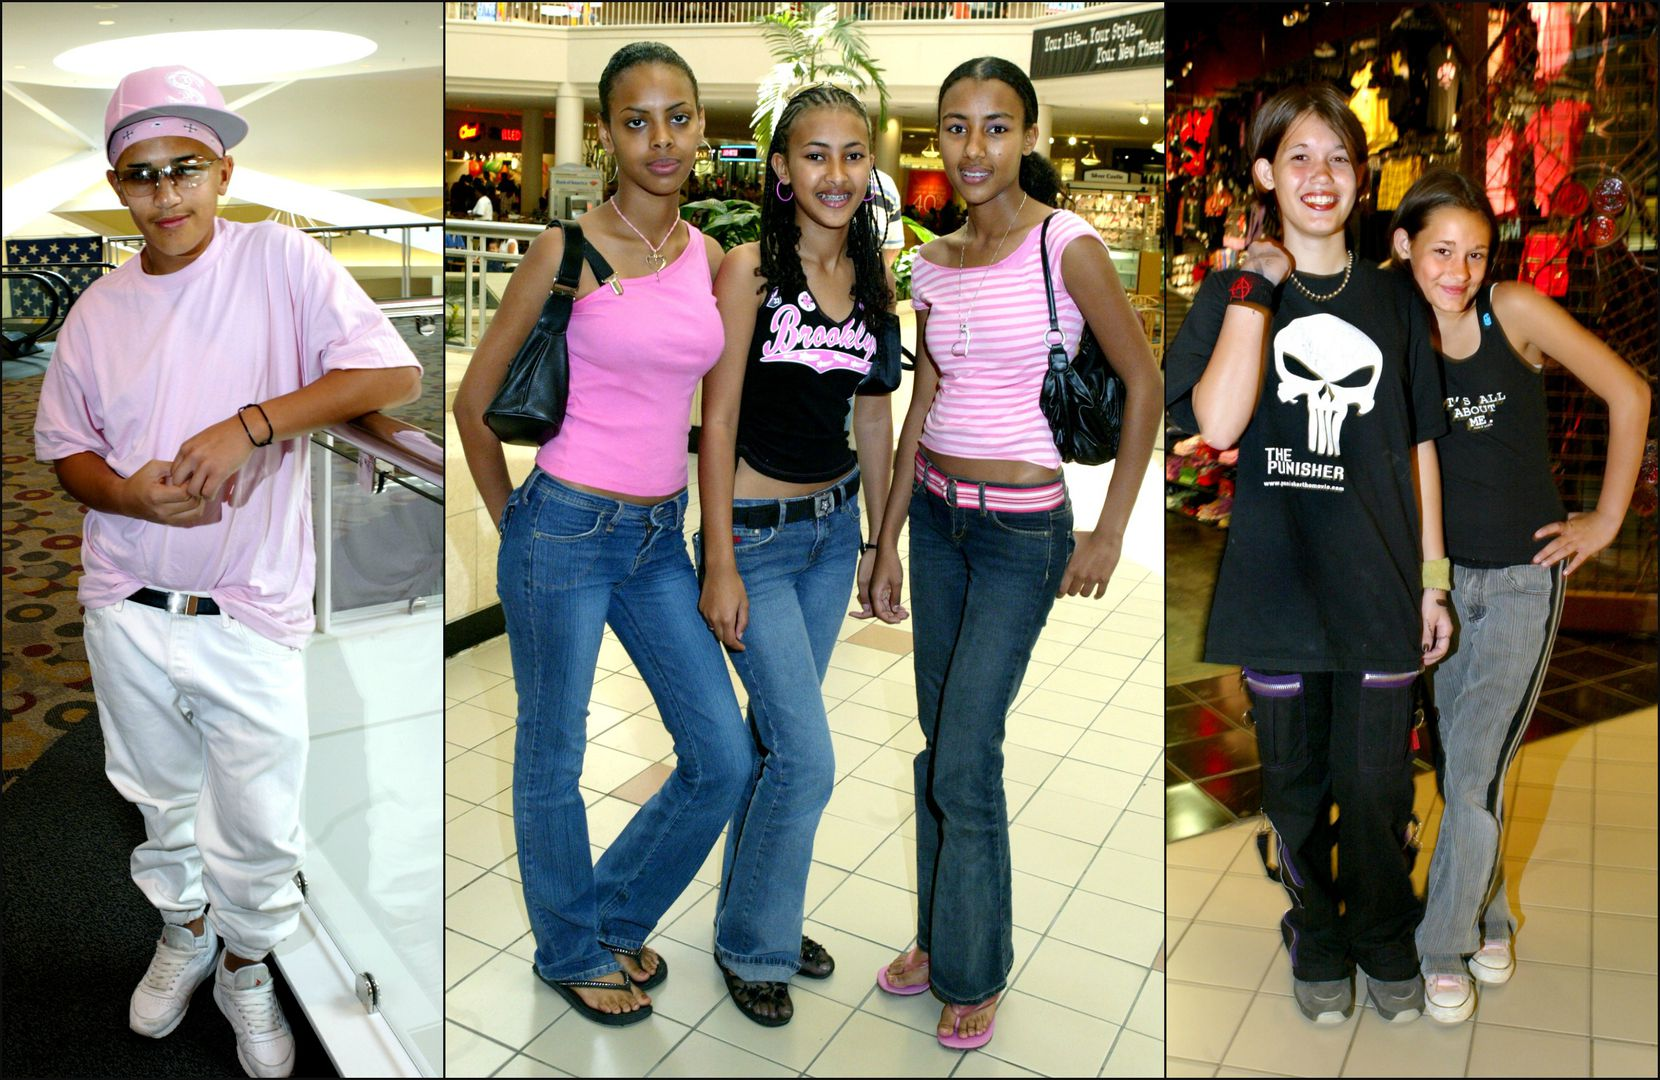 Left to right: Miguel Vasquez, Yordanos Melake, Fifi Russom, Sofia Russom, Chelse Ross and Courtne Ross were among the subjects of a back-to-school photo roundup in 2004.